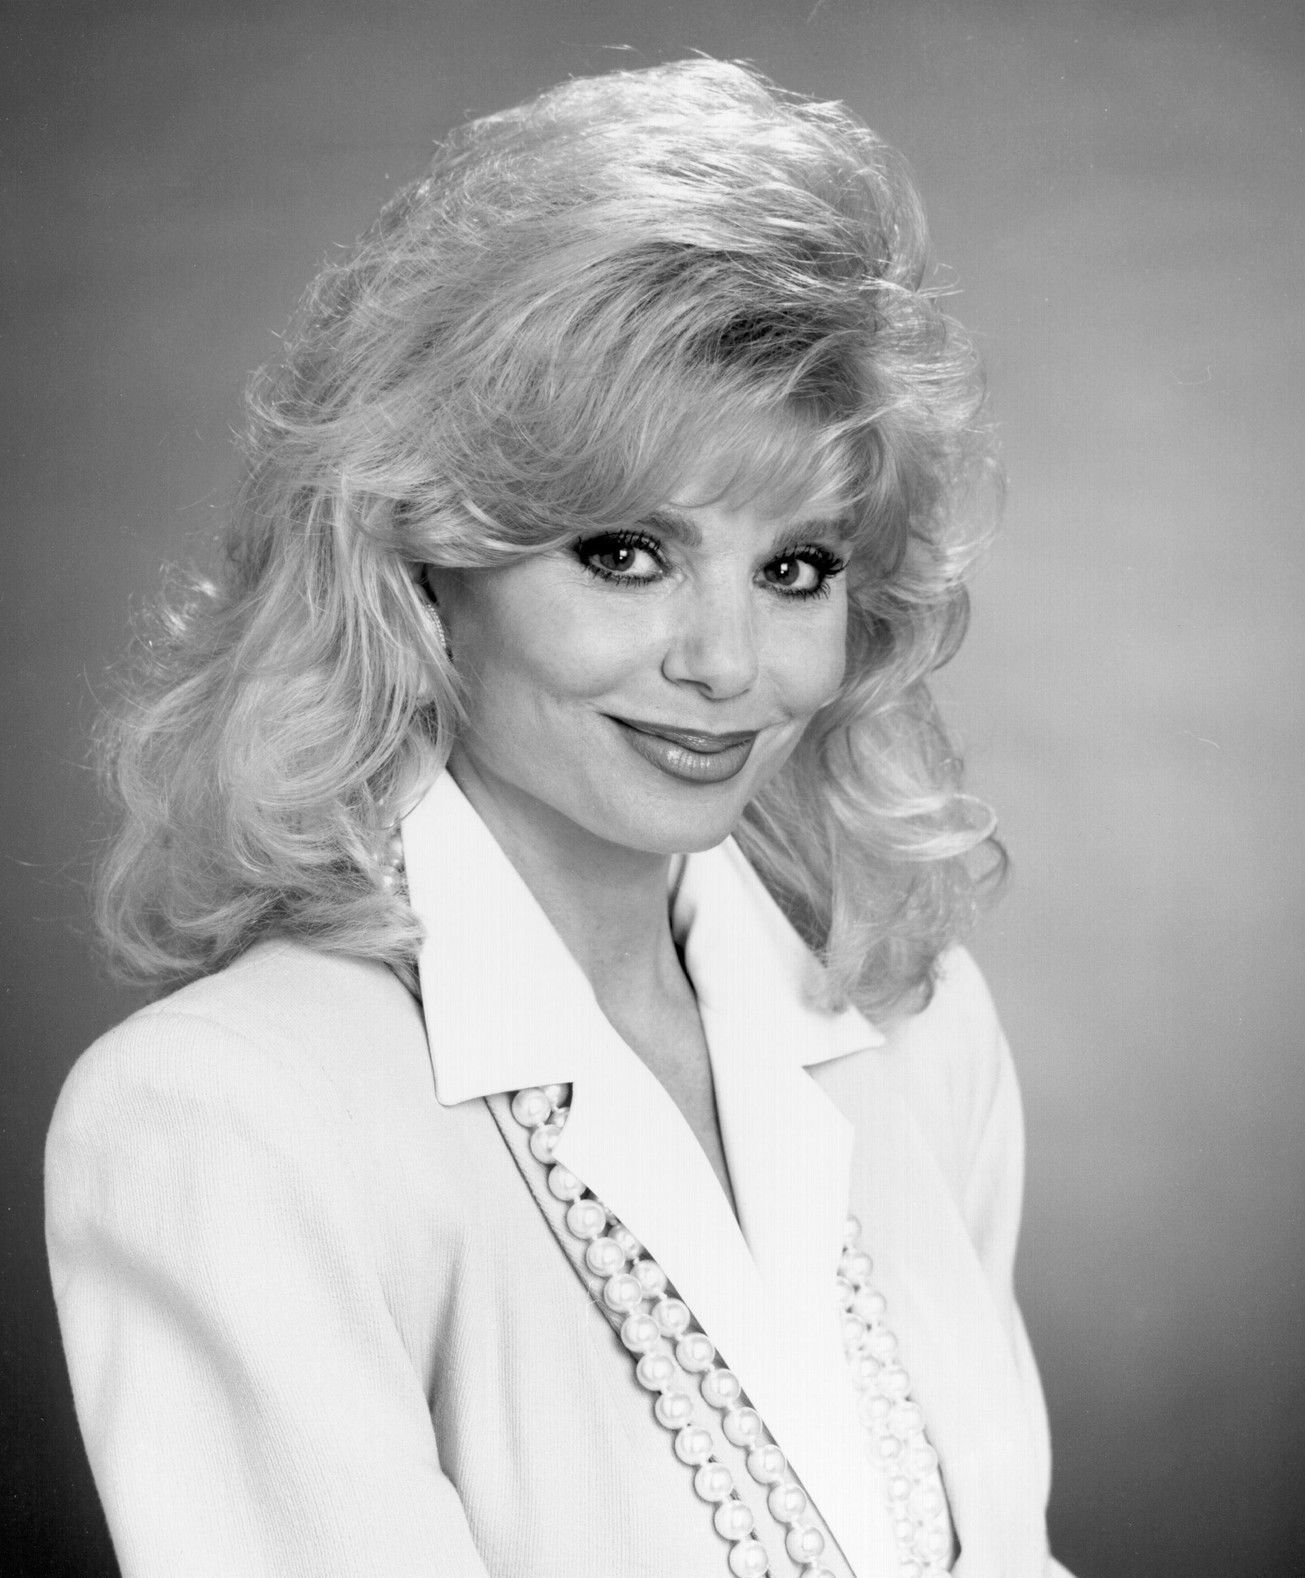 Loni Anderson born August 5, 1946 (age 72) Loni Anderson born August 5, 1946 (age 72) new photo